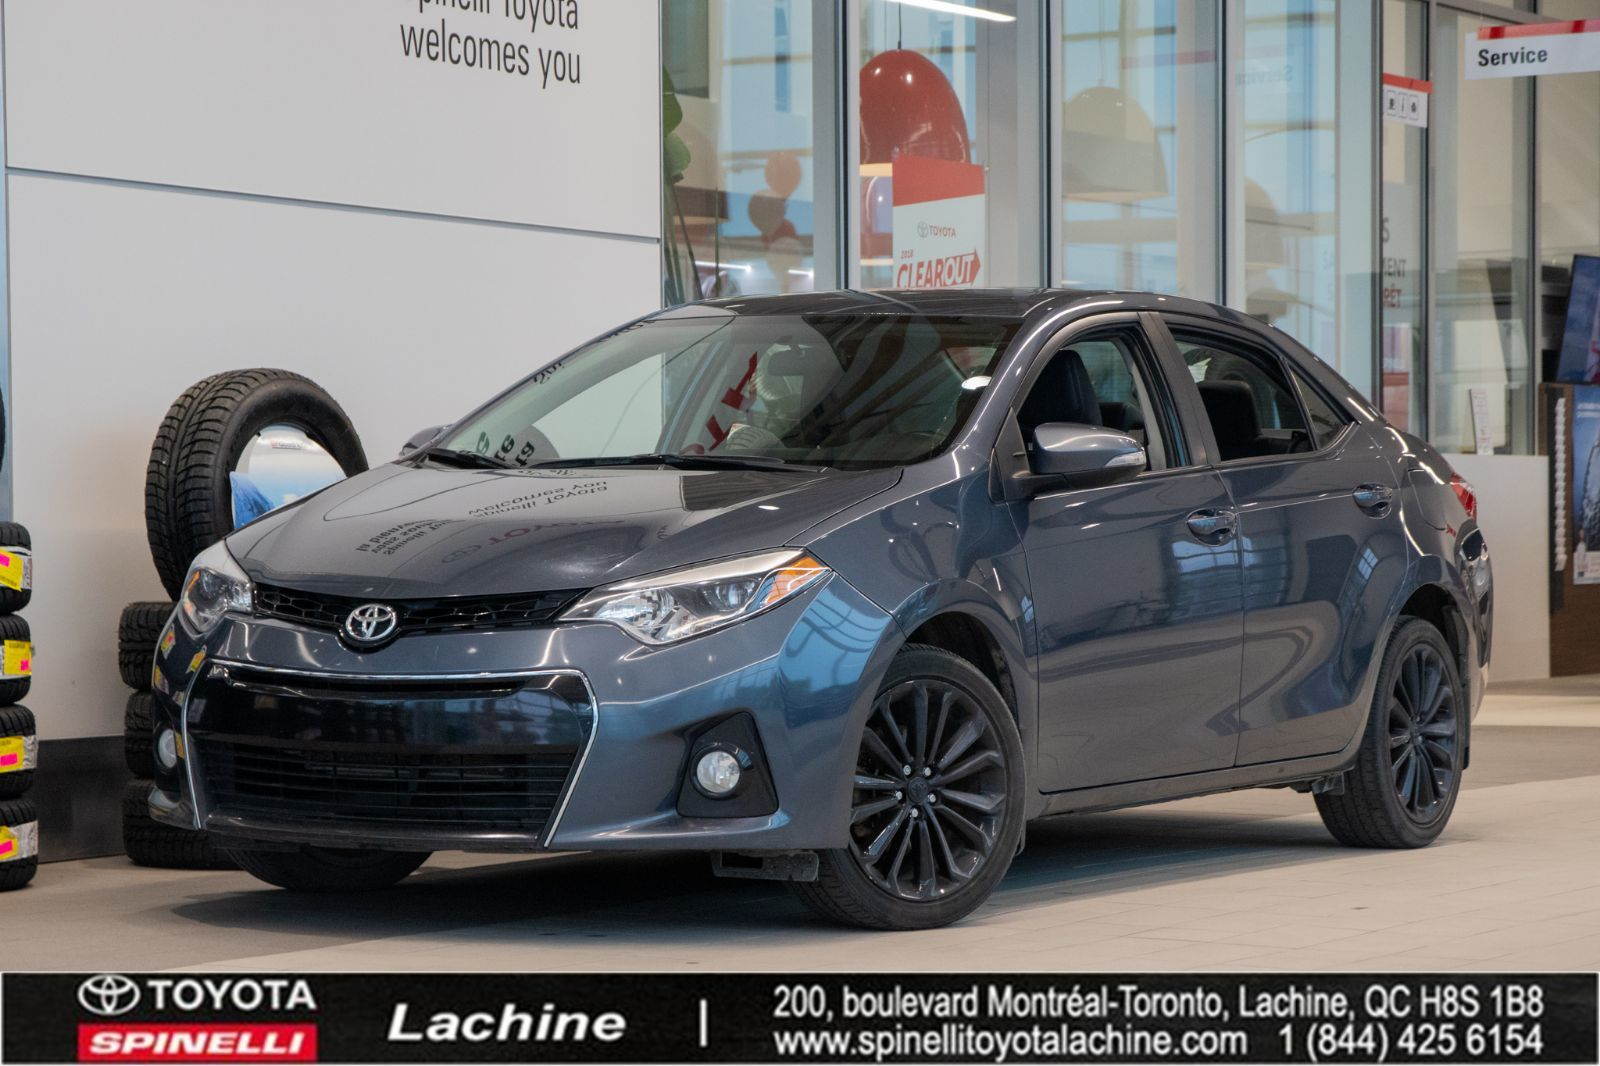 used 2015 toyota corolla s for sale in montreal 19t0103a spinelli toyota lachine. Black Bedroom Furniture Sets. Home Design Ideas